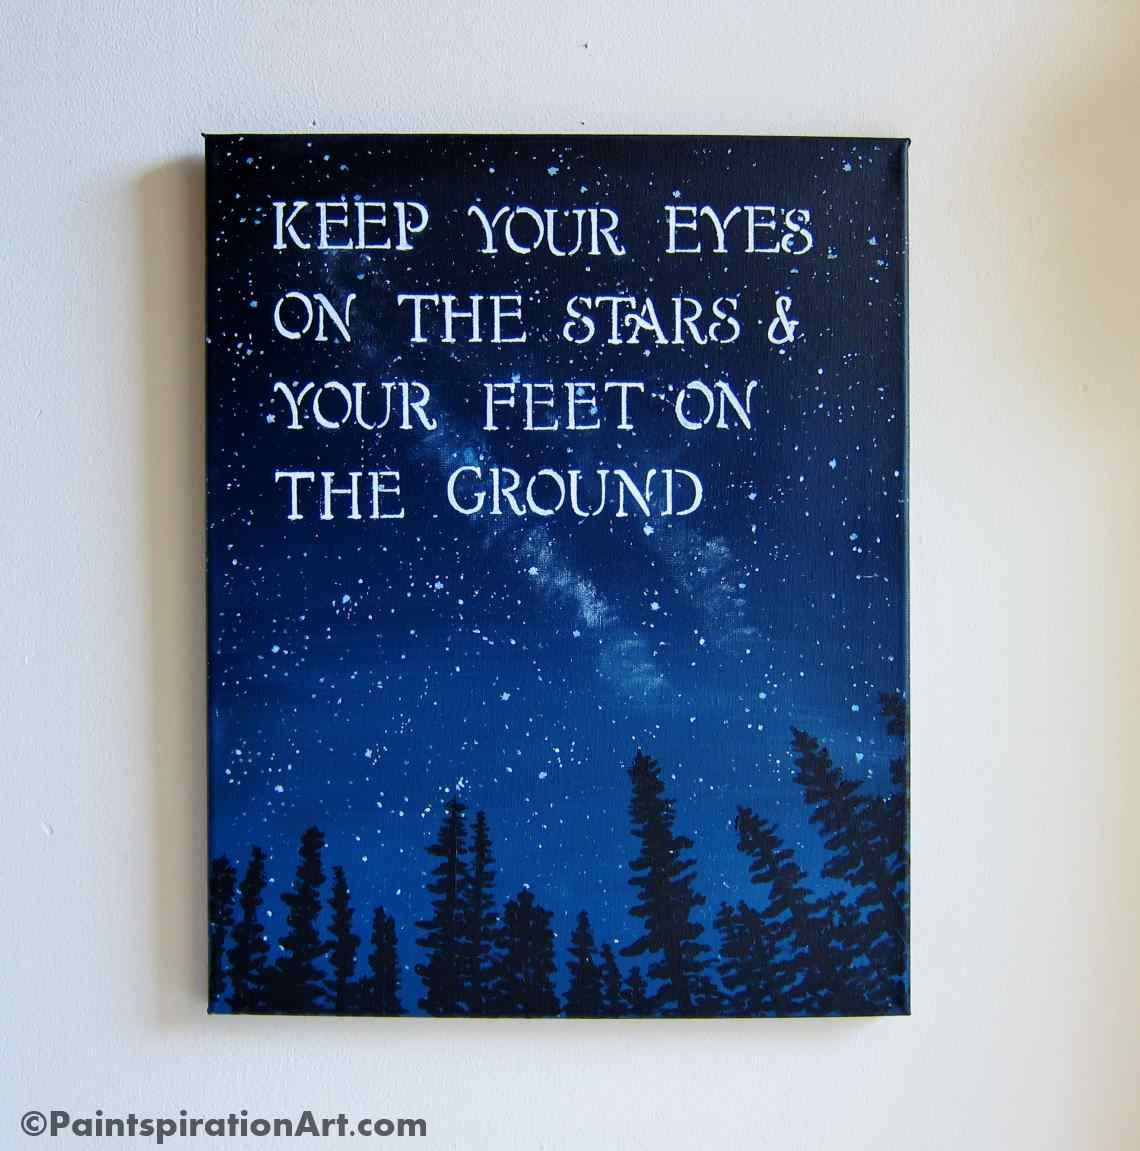 Love Quotes On Canvas Inspirational Quotes Canvas Painting  Sayings Keep Your Eyes On